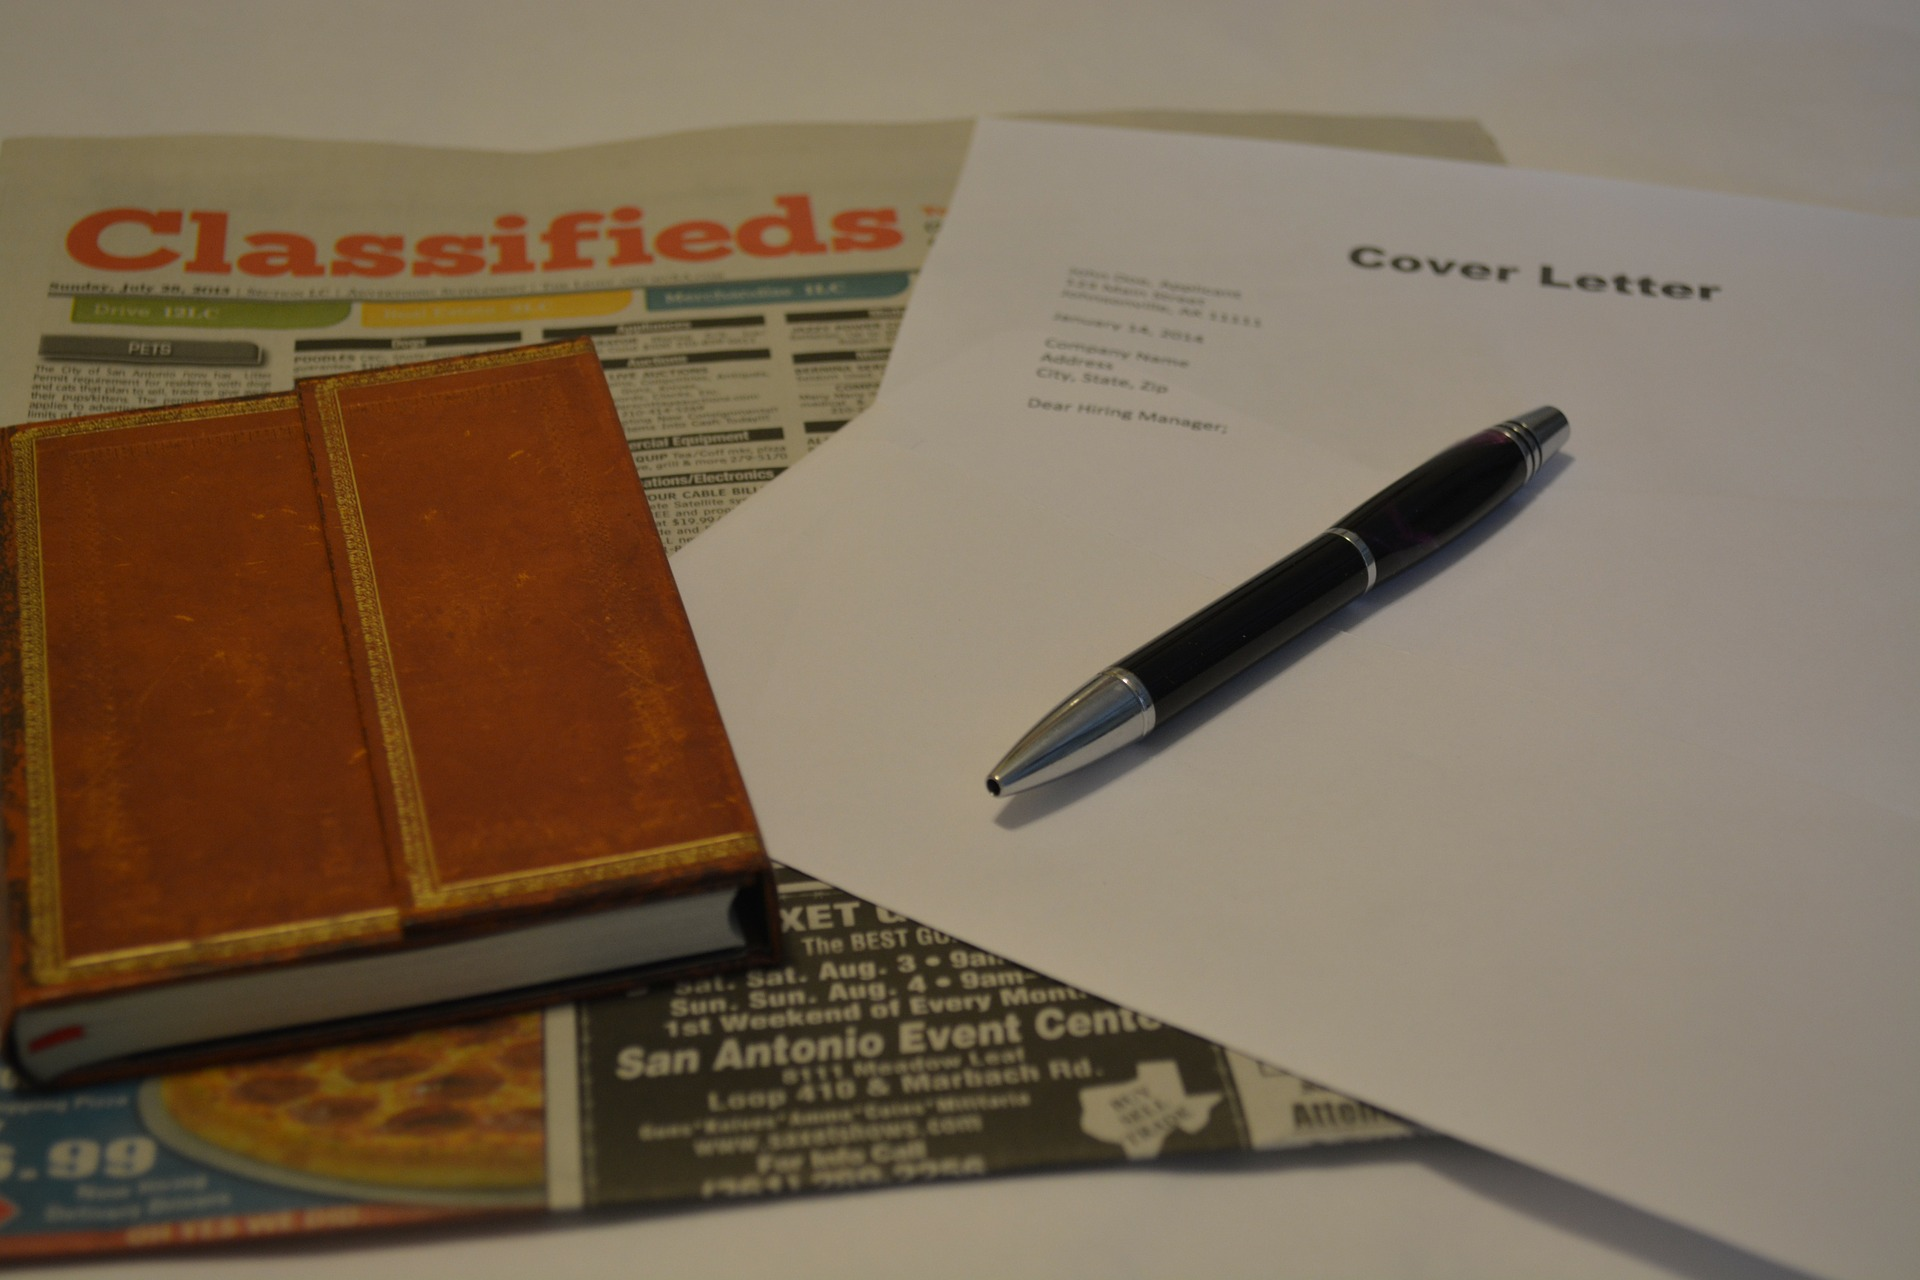 Resume cover letter and newspaper classifieds